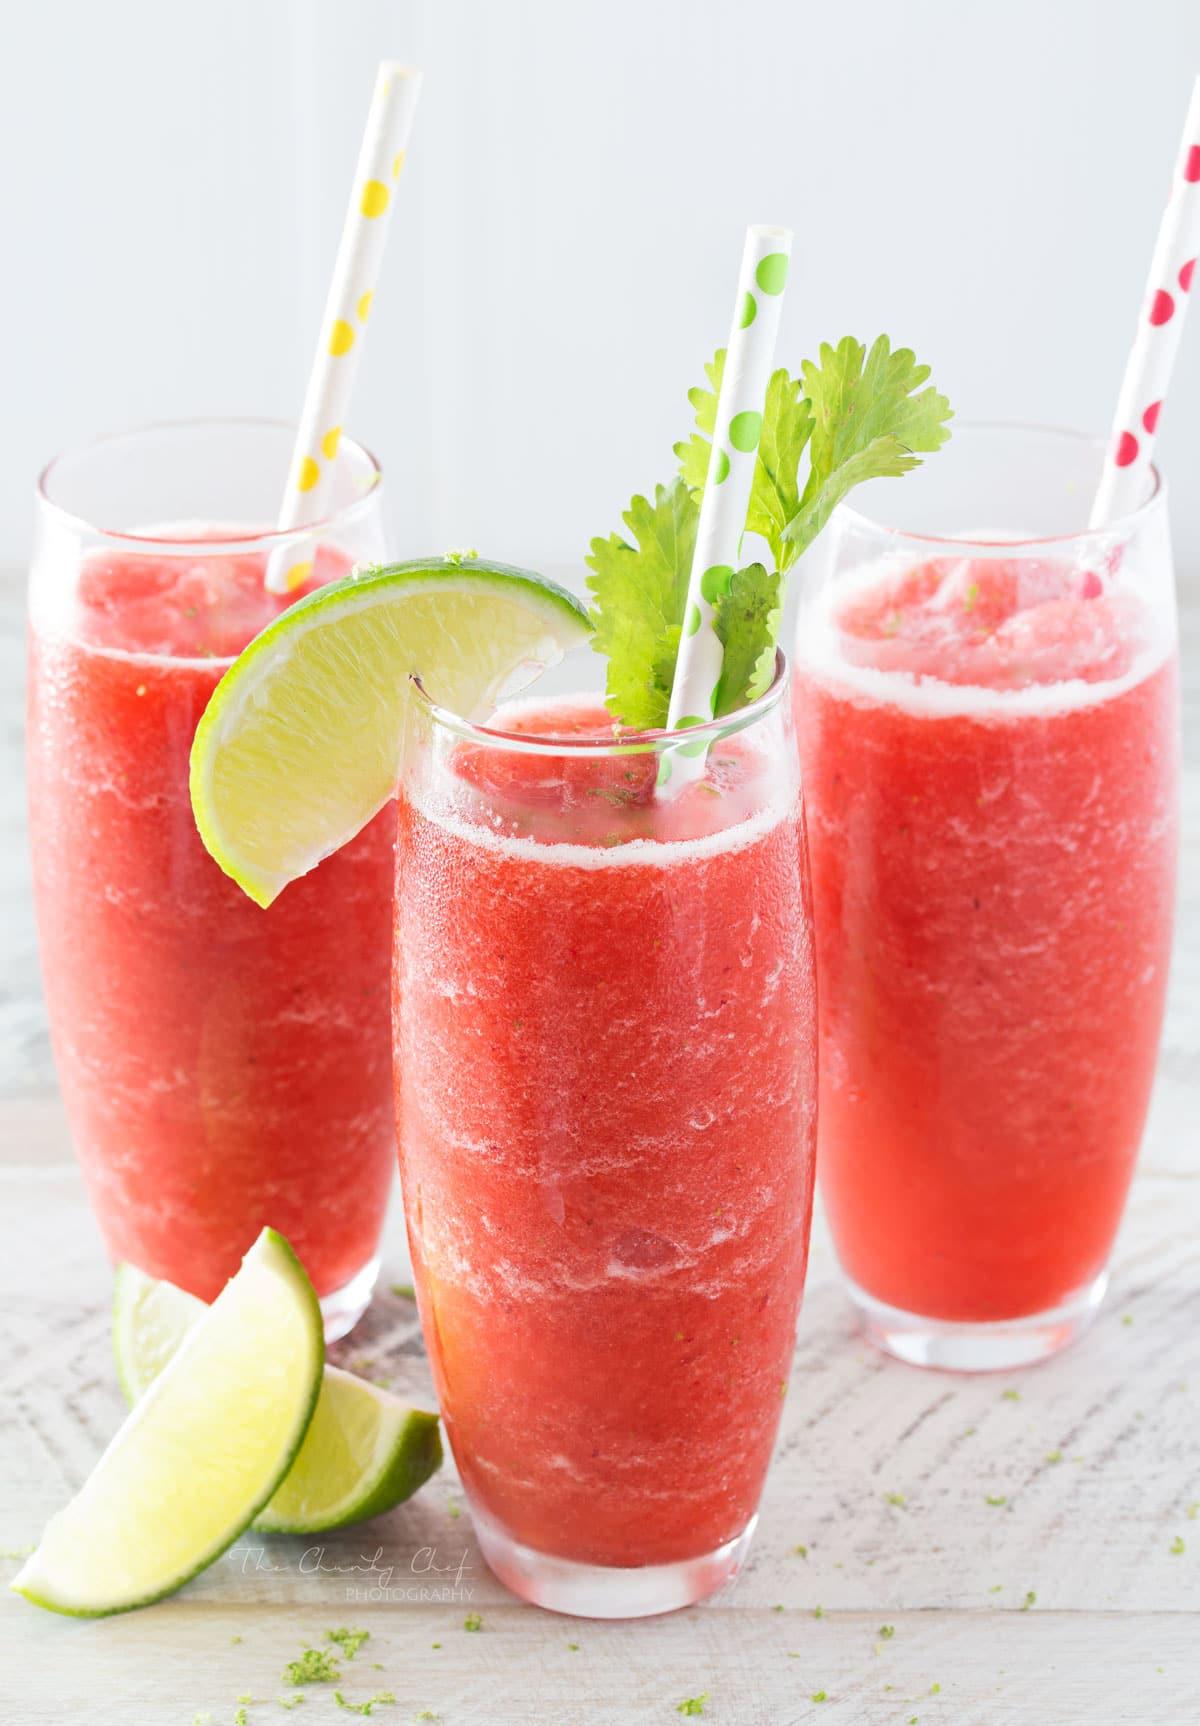 Boozy Strawberry Limeade Slushies  The Chunky Chef